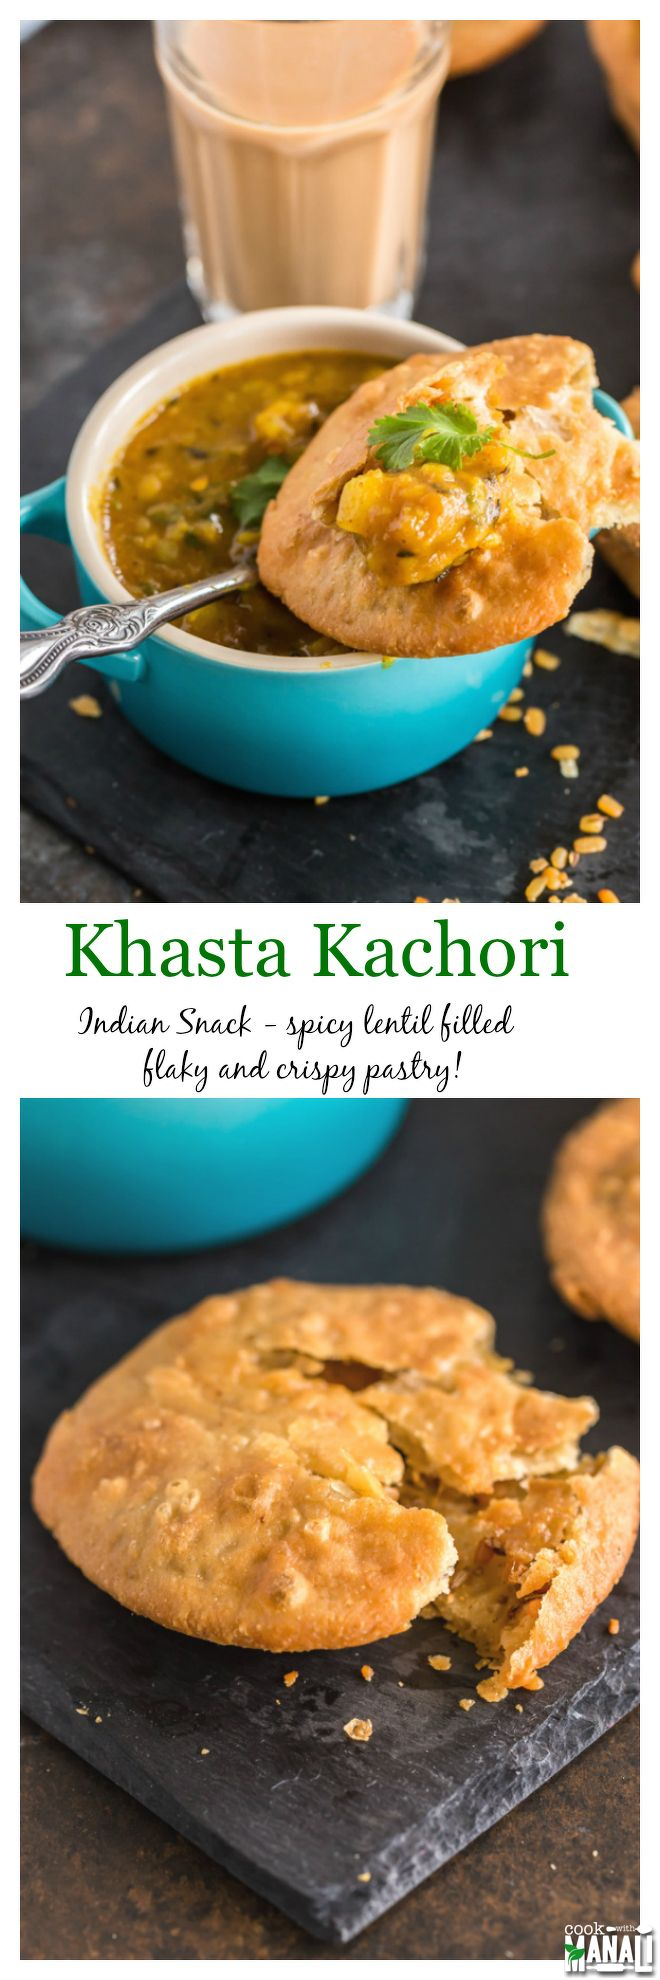 Crispy, flaky Khasta Kachori! This savory lentil filled pastry is best enjoyed with spicy potatoes - a popular breakfast/snack from northern India! #vegan #indian Find the recipe on www.cookwithmanali.com